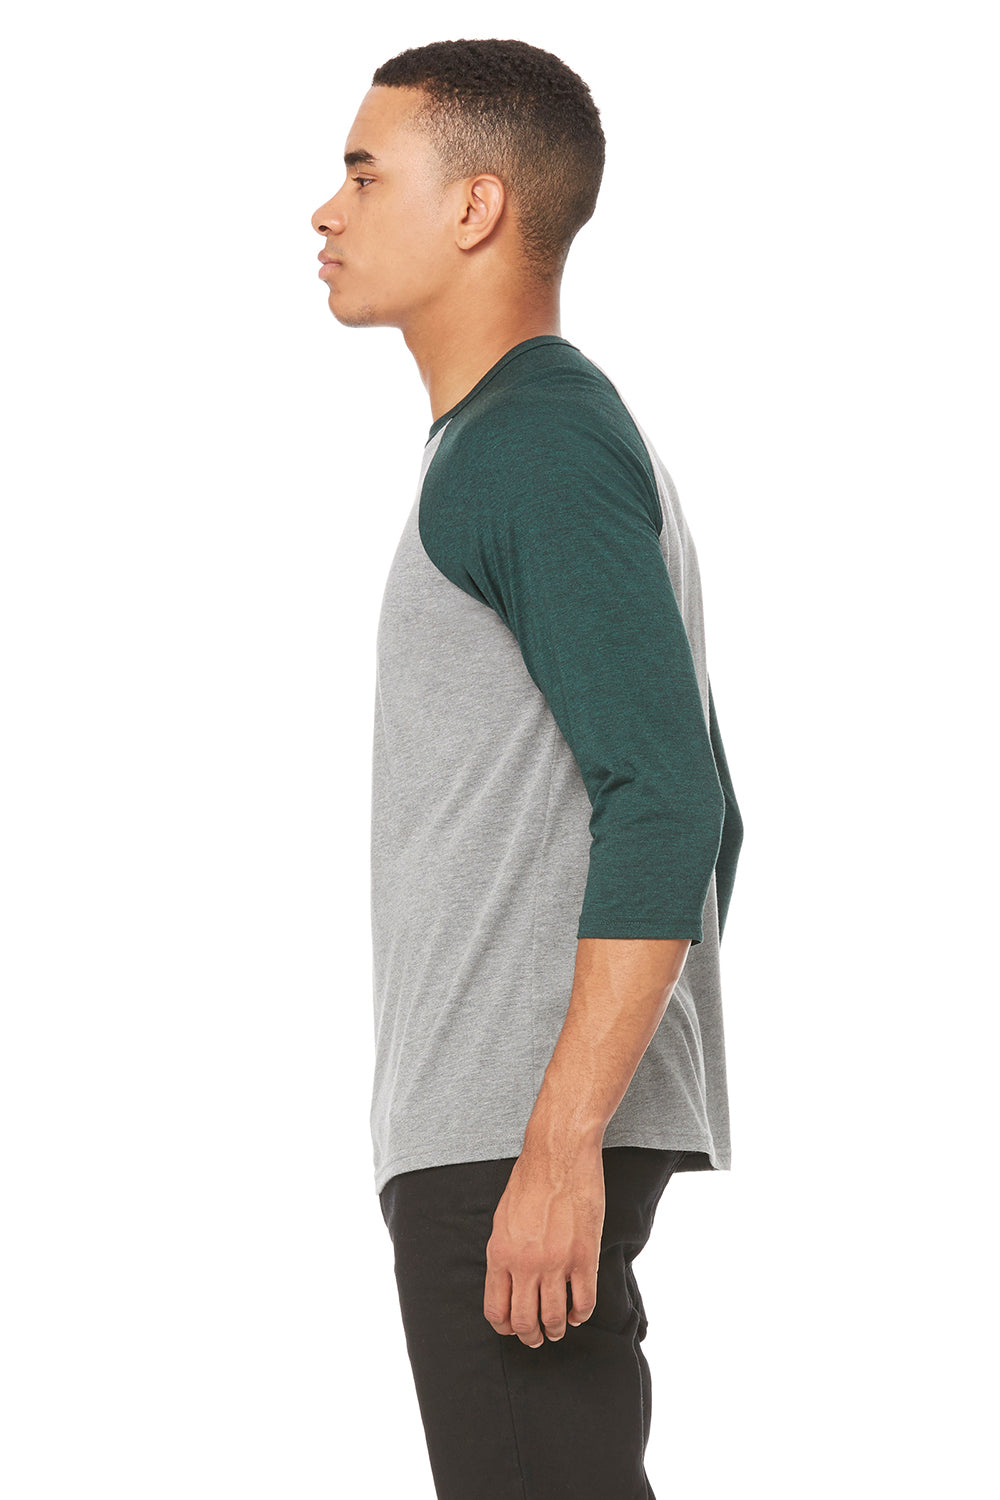 Bella + Canvas 3200 Mens 3/4 Sleeve Crewneck T-Shirt Grey/Emerald Green Side